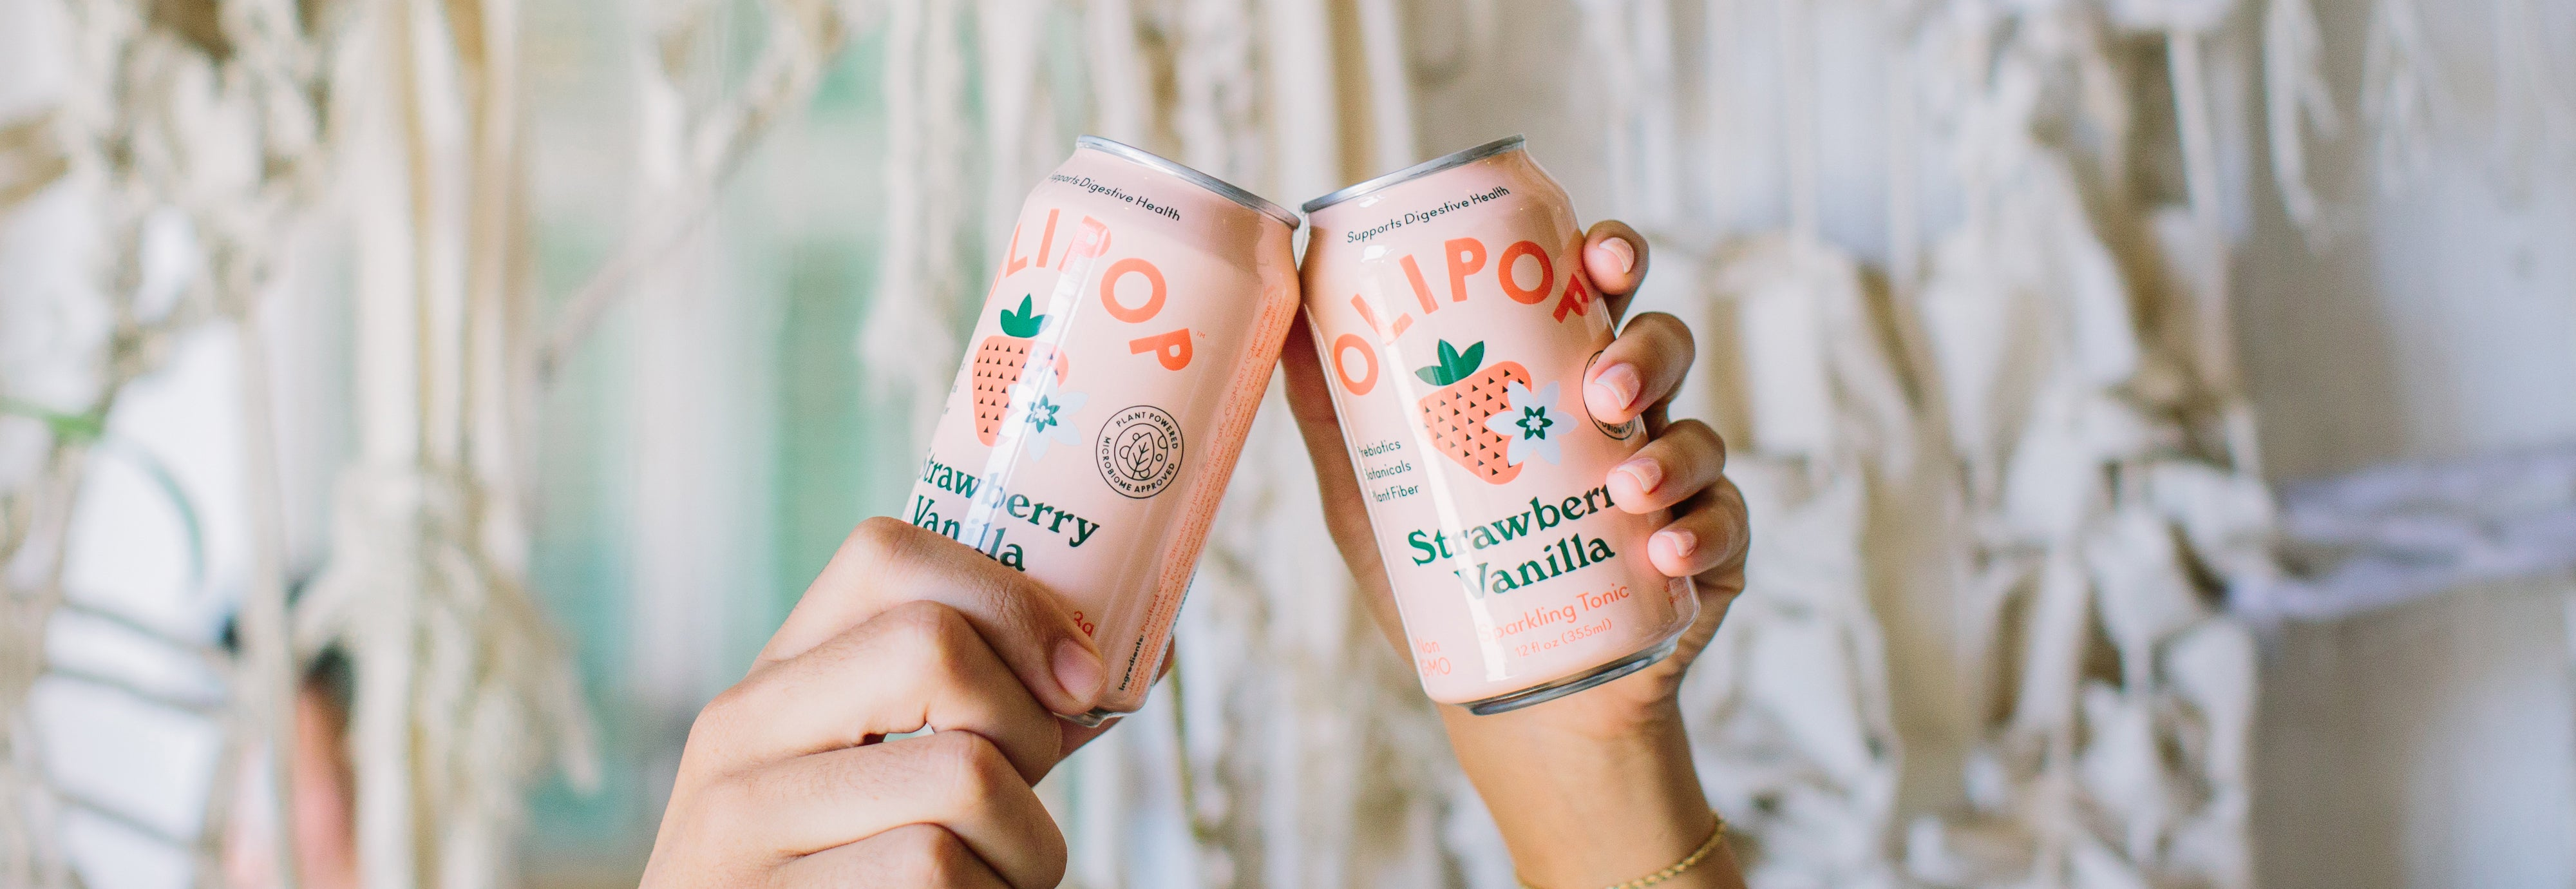 Hands holding two cans of Olipop strawberry vanilla